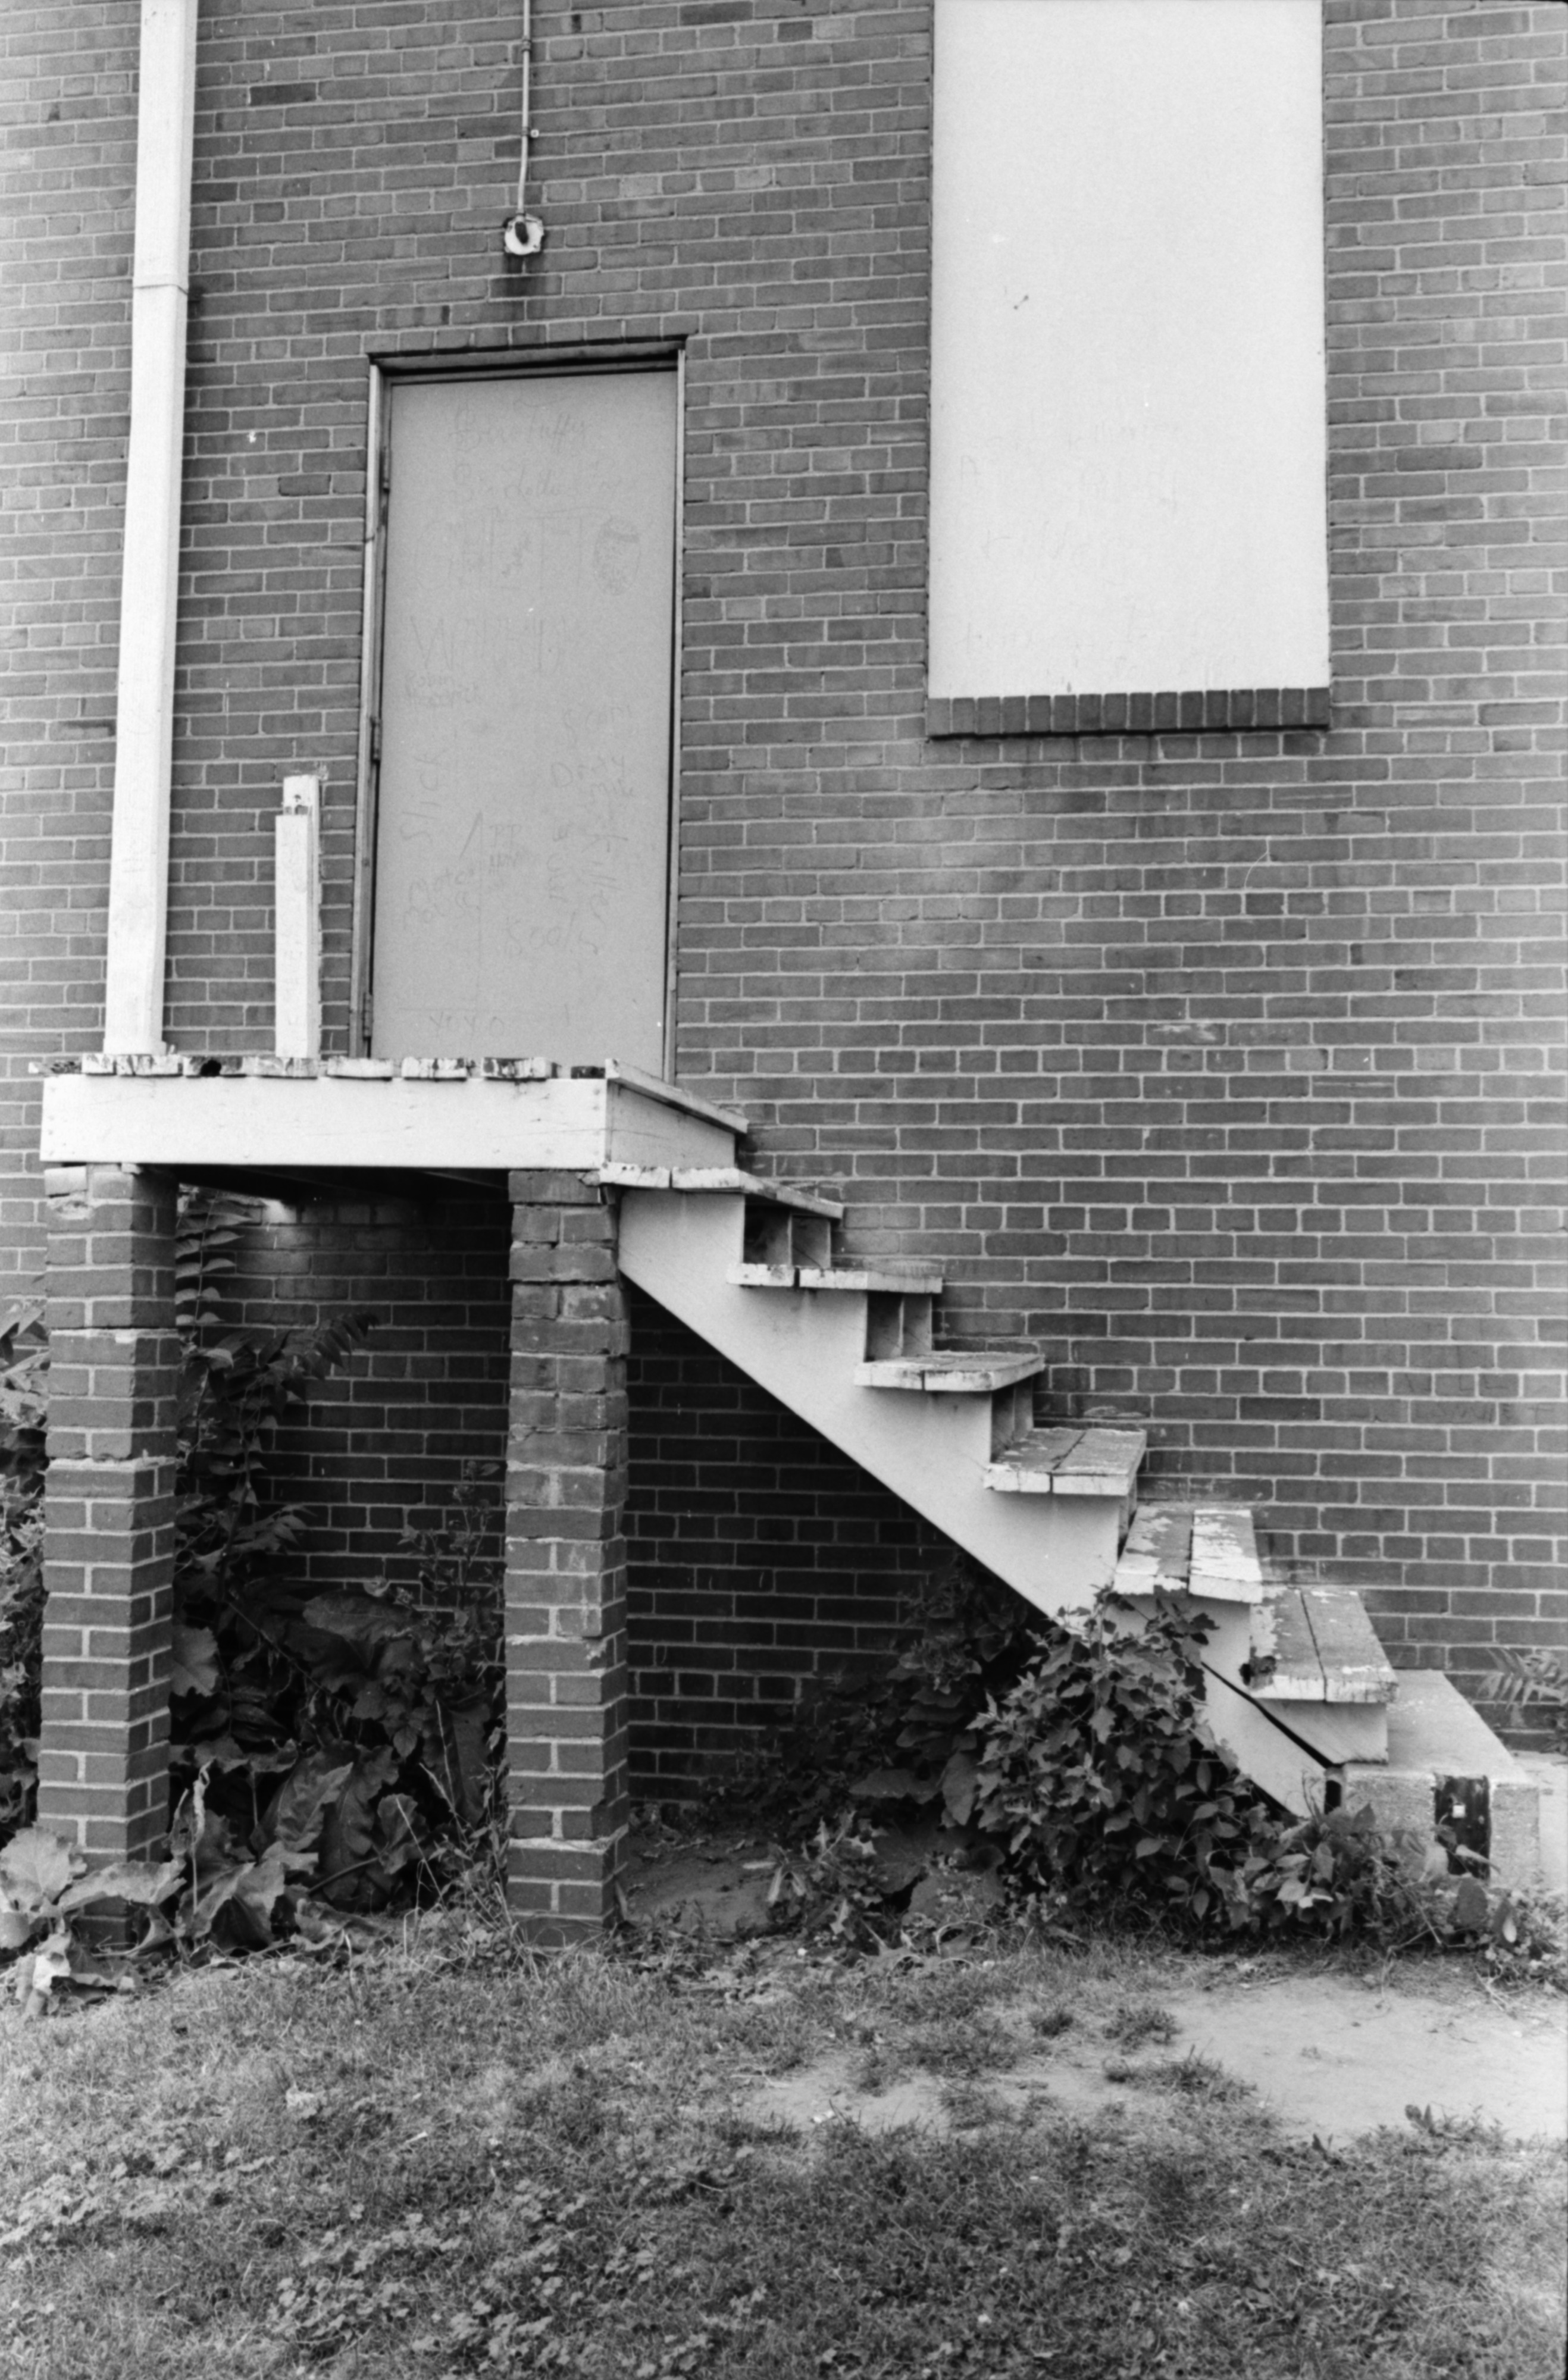 Rickety Staircase at Parkridge Community Center, July 1978 image